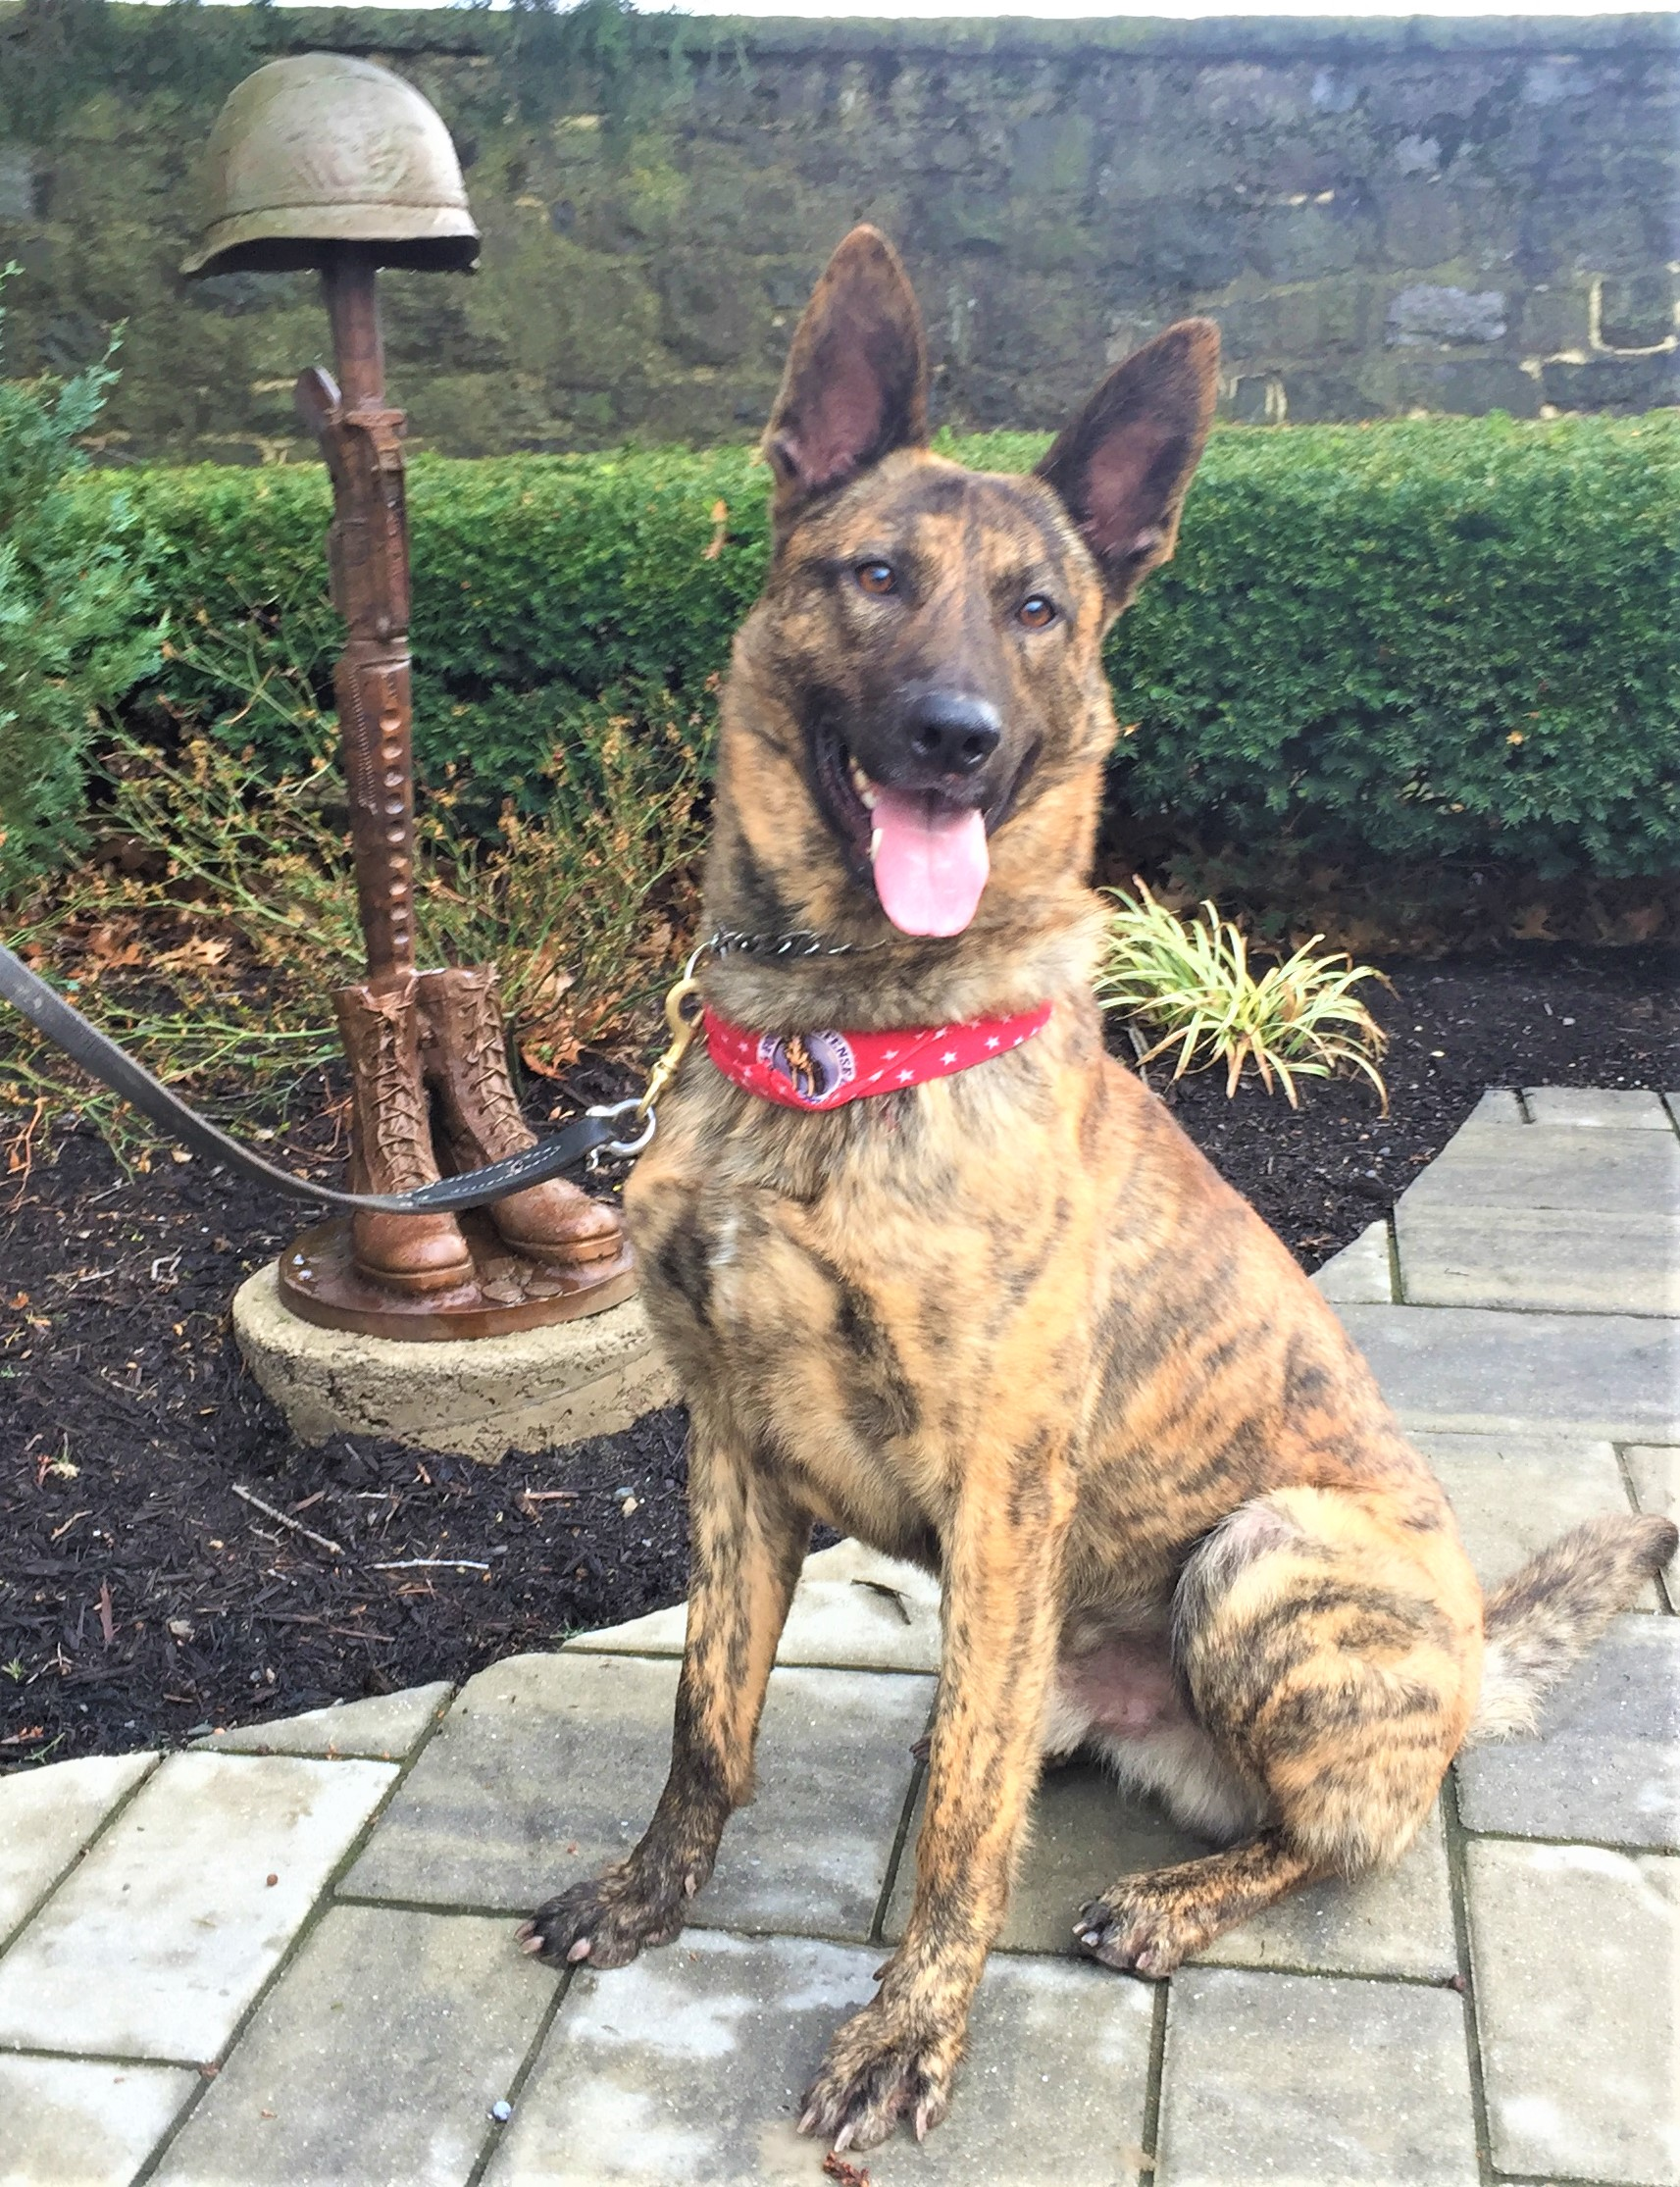 K-9 Kenner - Specialty: Narcotic DetectionBreed: Dutch ShepherdBirthdate: August 1, 2015Birthplace: SlovakiaColor: BrindleWeight: 67 PoundsCertification: North American Police Working Dog AssociationFood: NutriSource, PerformanceHometown: Enola, Pennsylvania